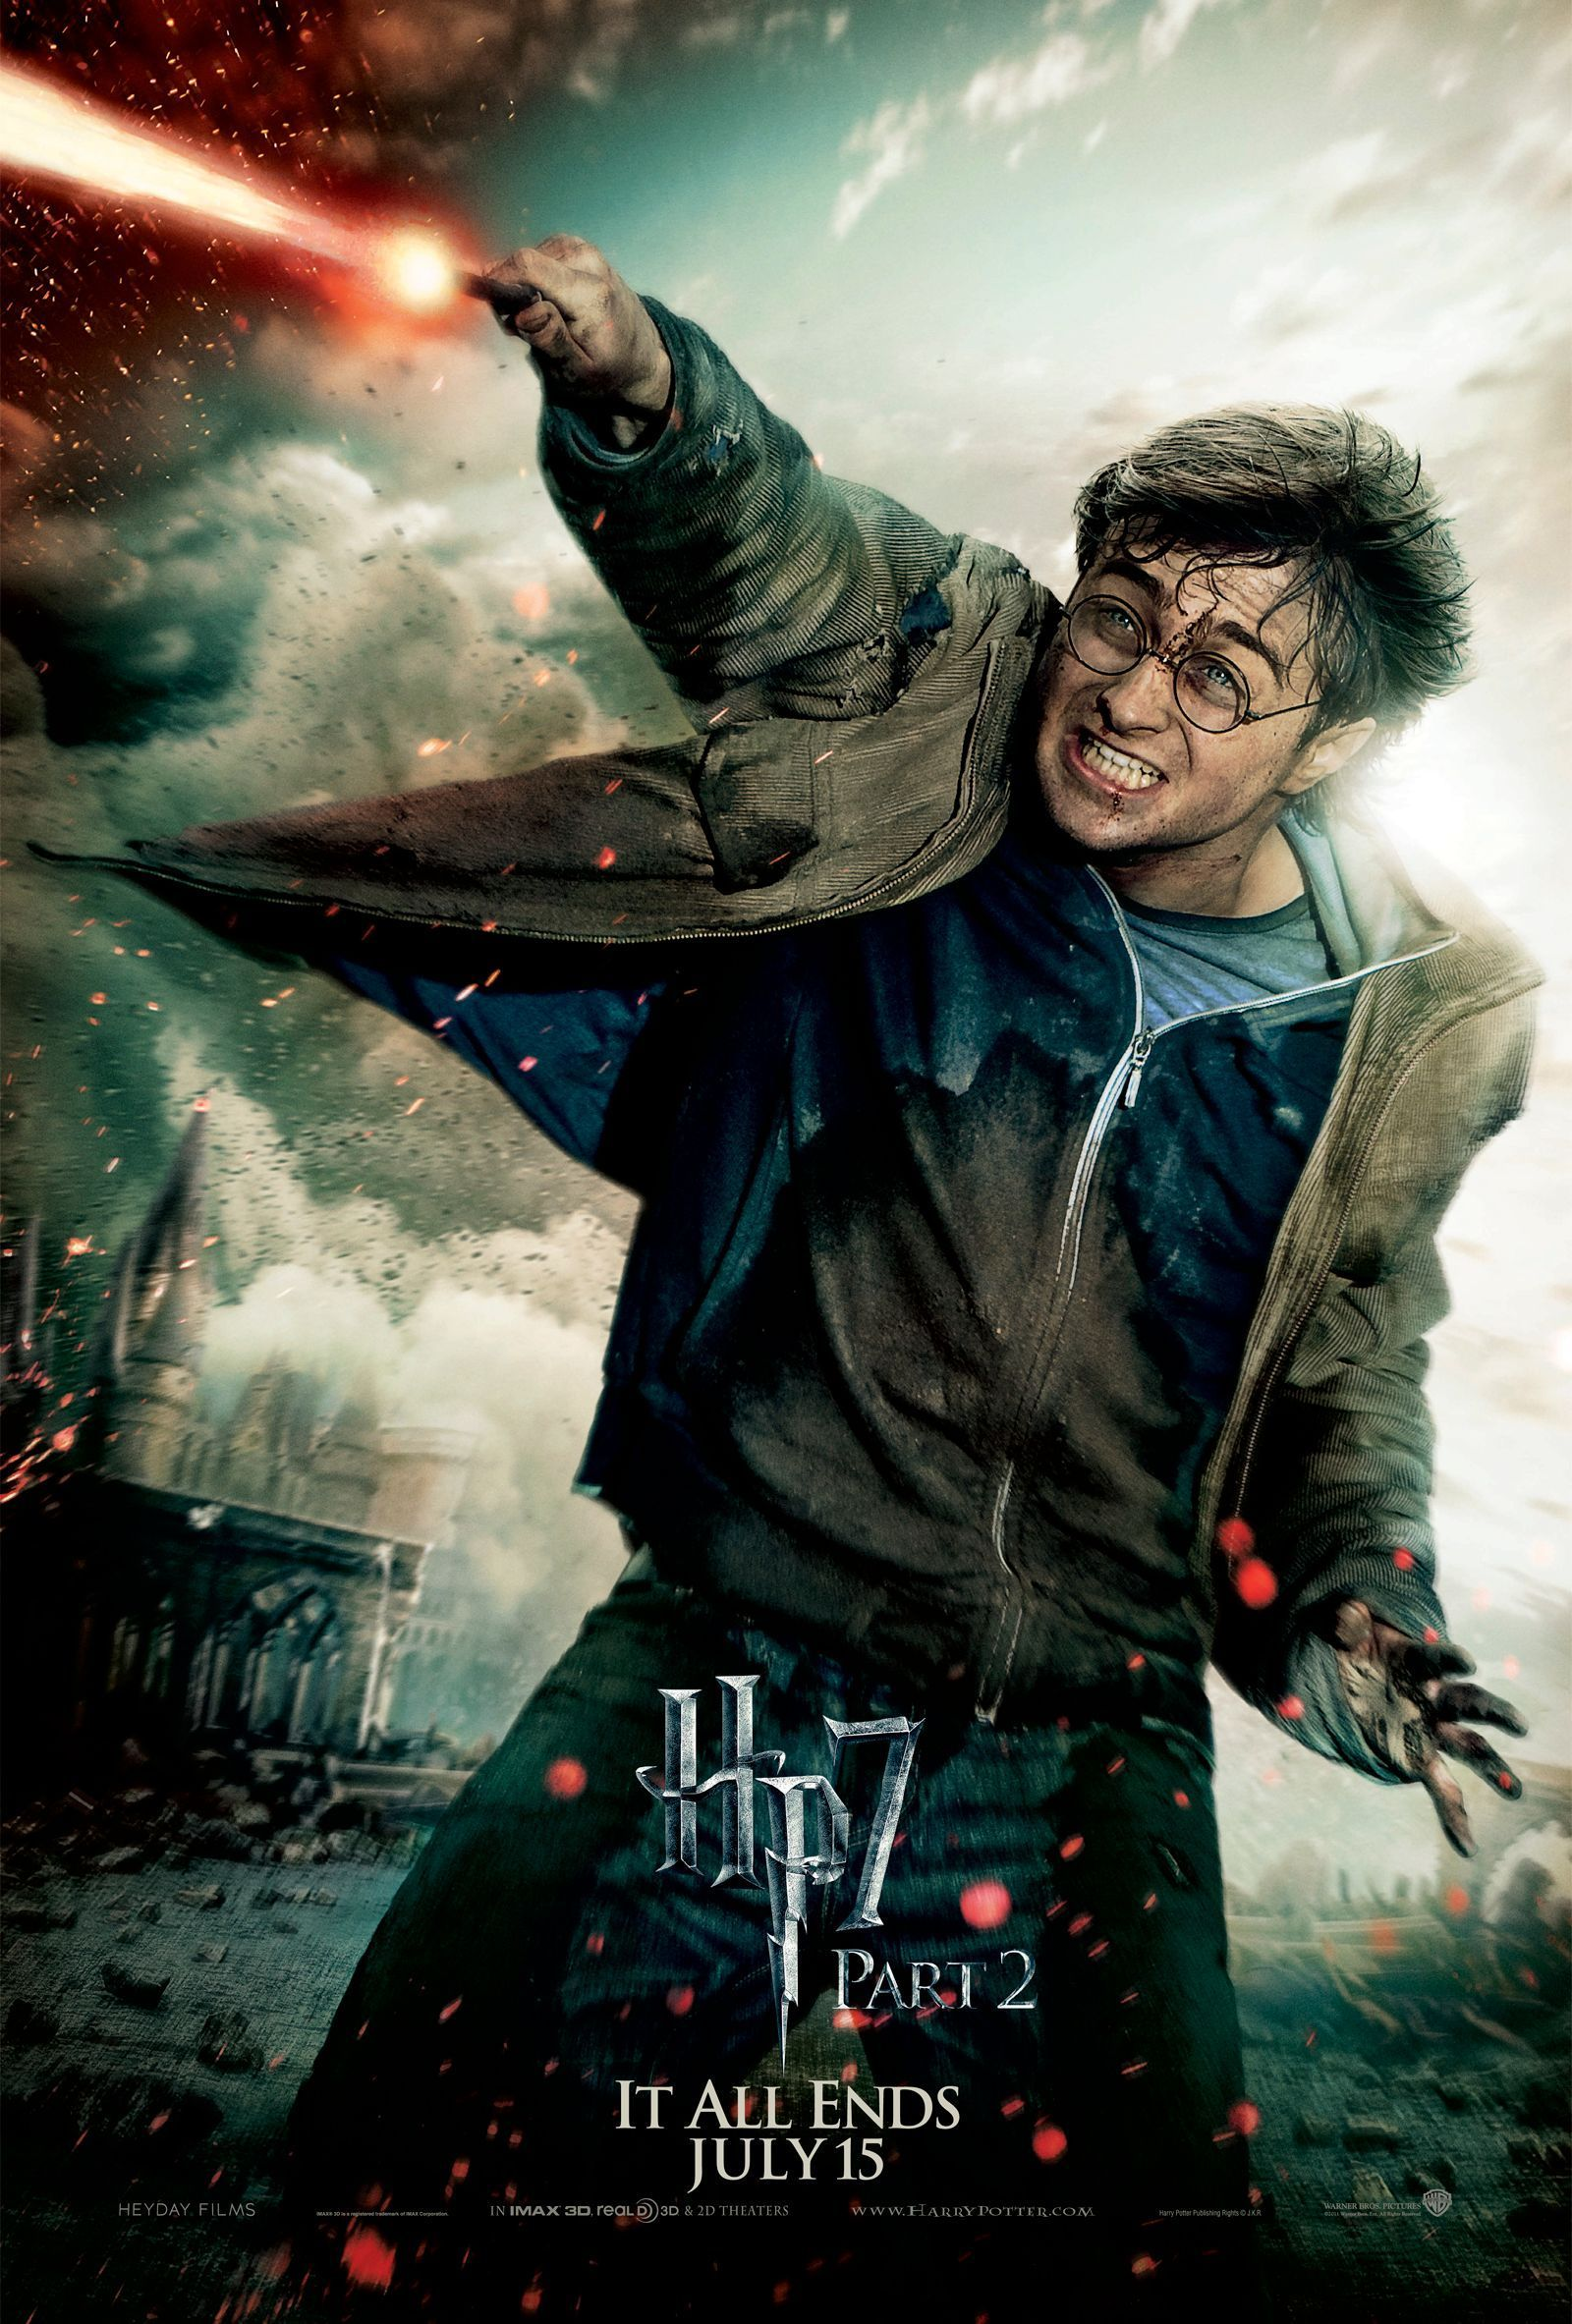 Deathly Hallows Part 2 Action Poster: Harry Potter [HQ ...